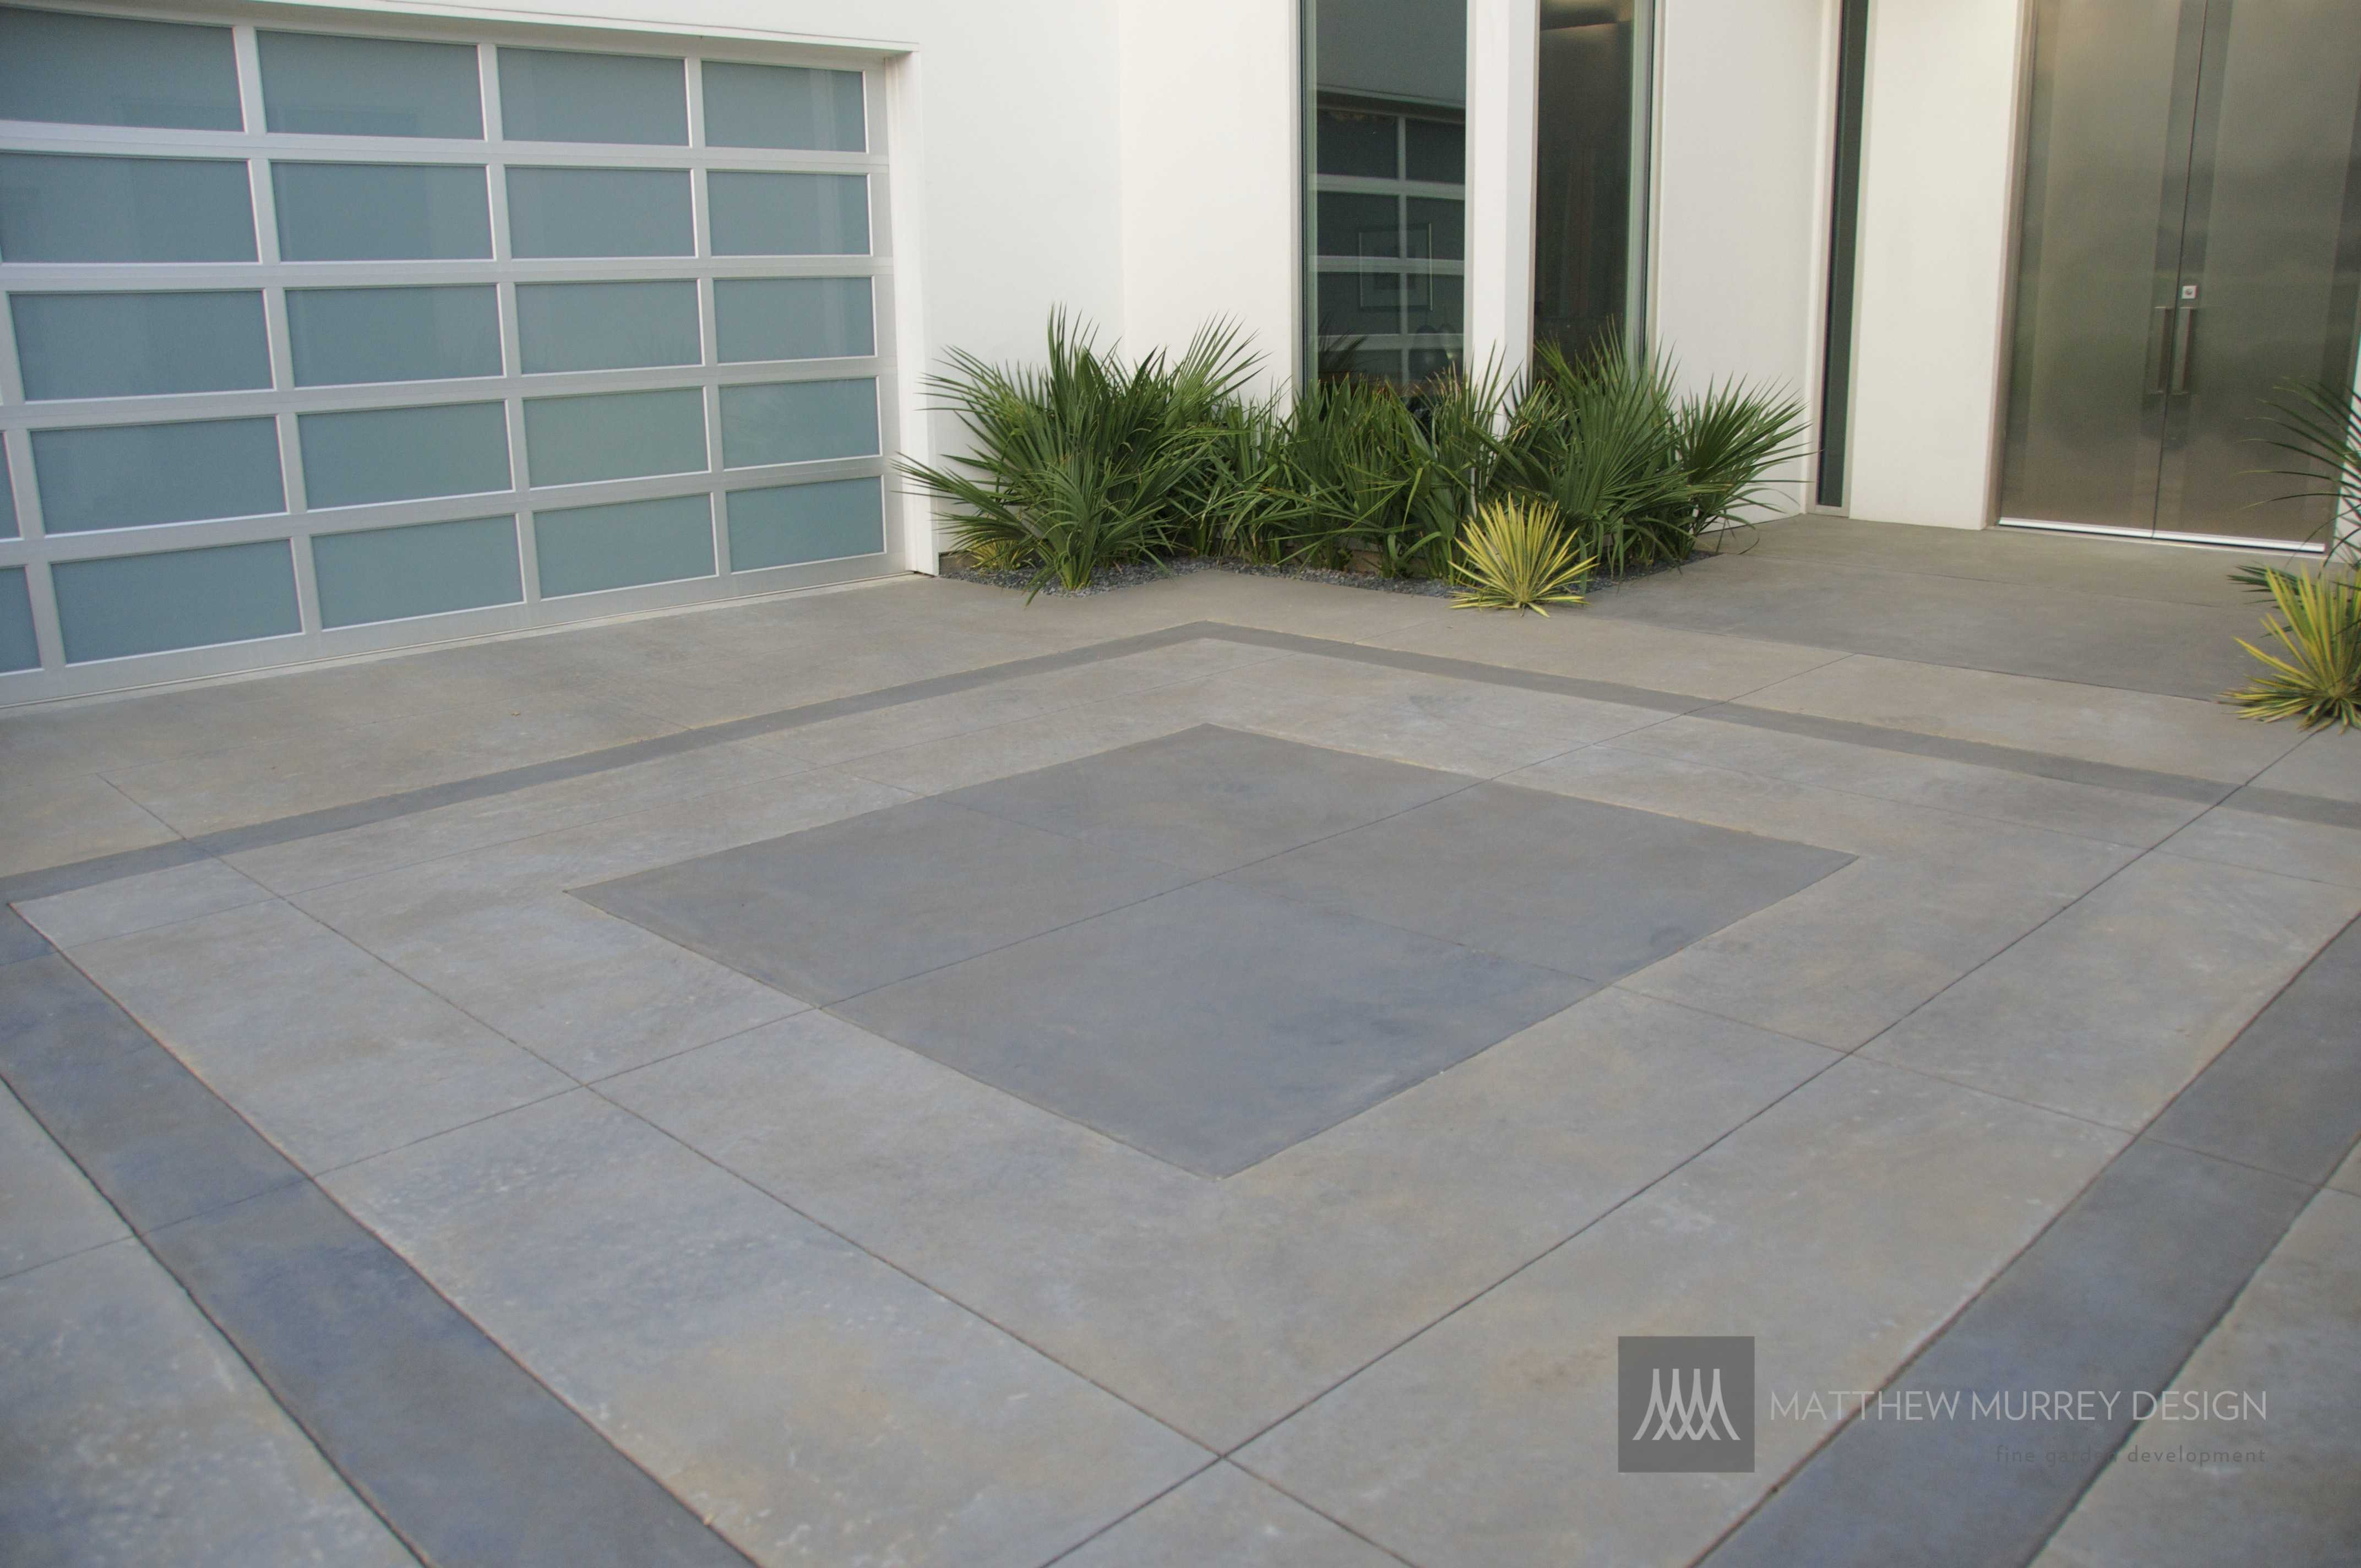 Contemporary Patterned Concrete Driveway